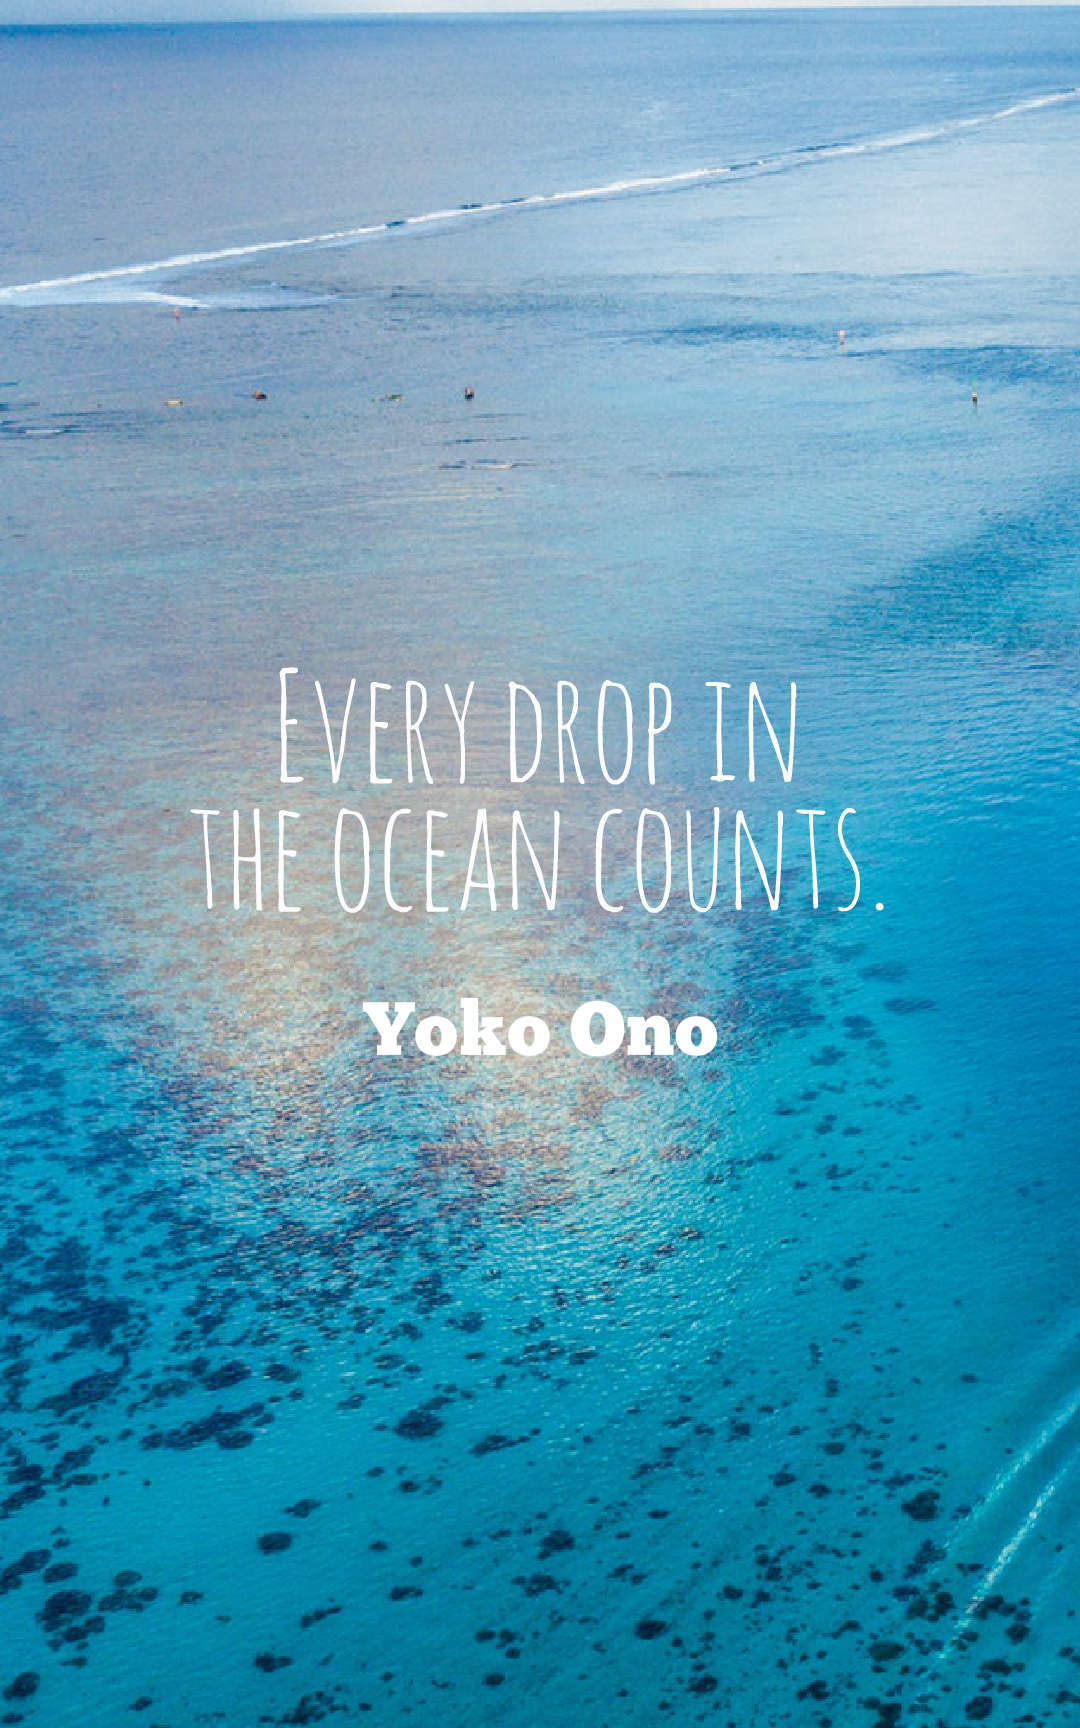 35 Inspirational Ocean Quotes and Sayings with Images